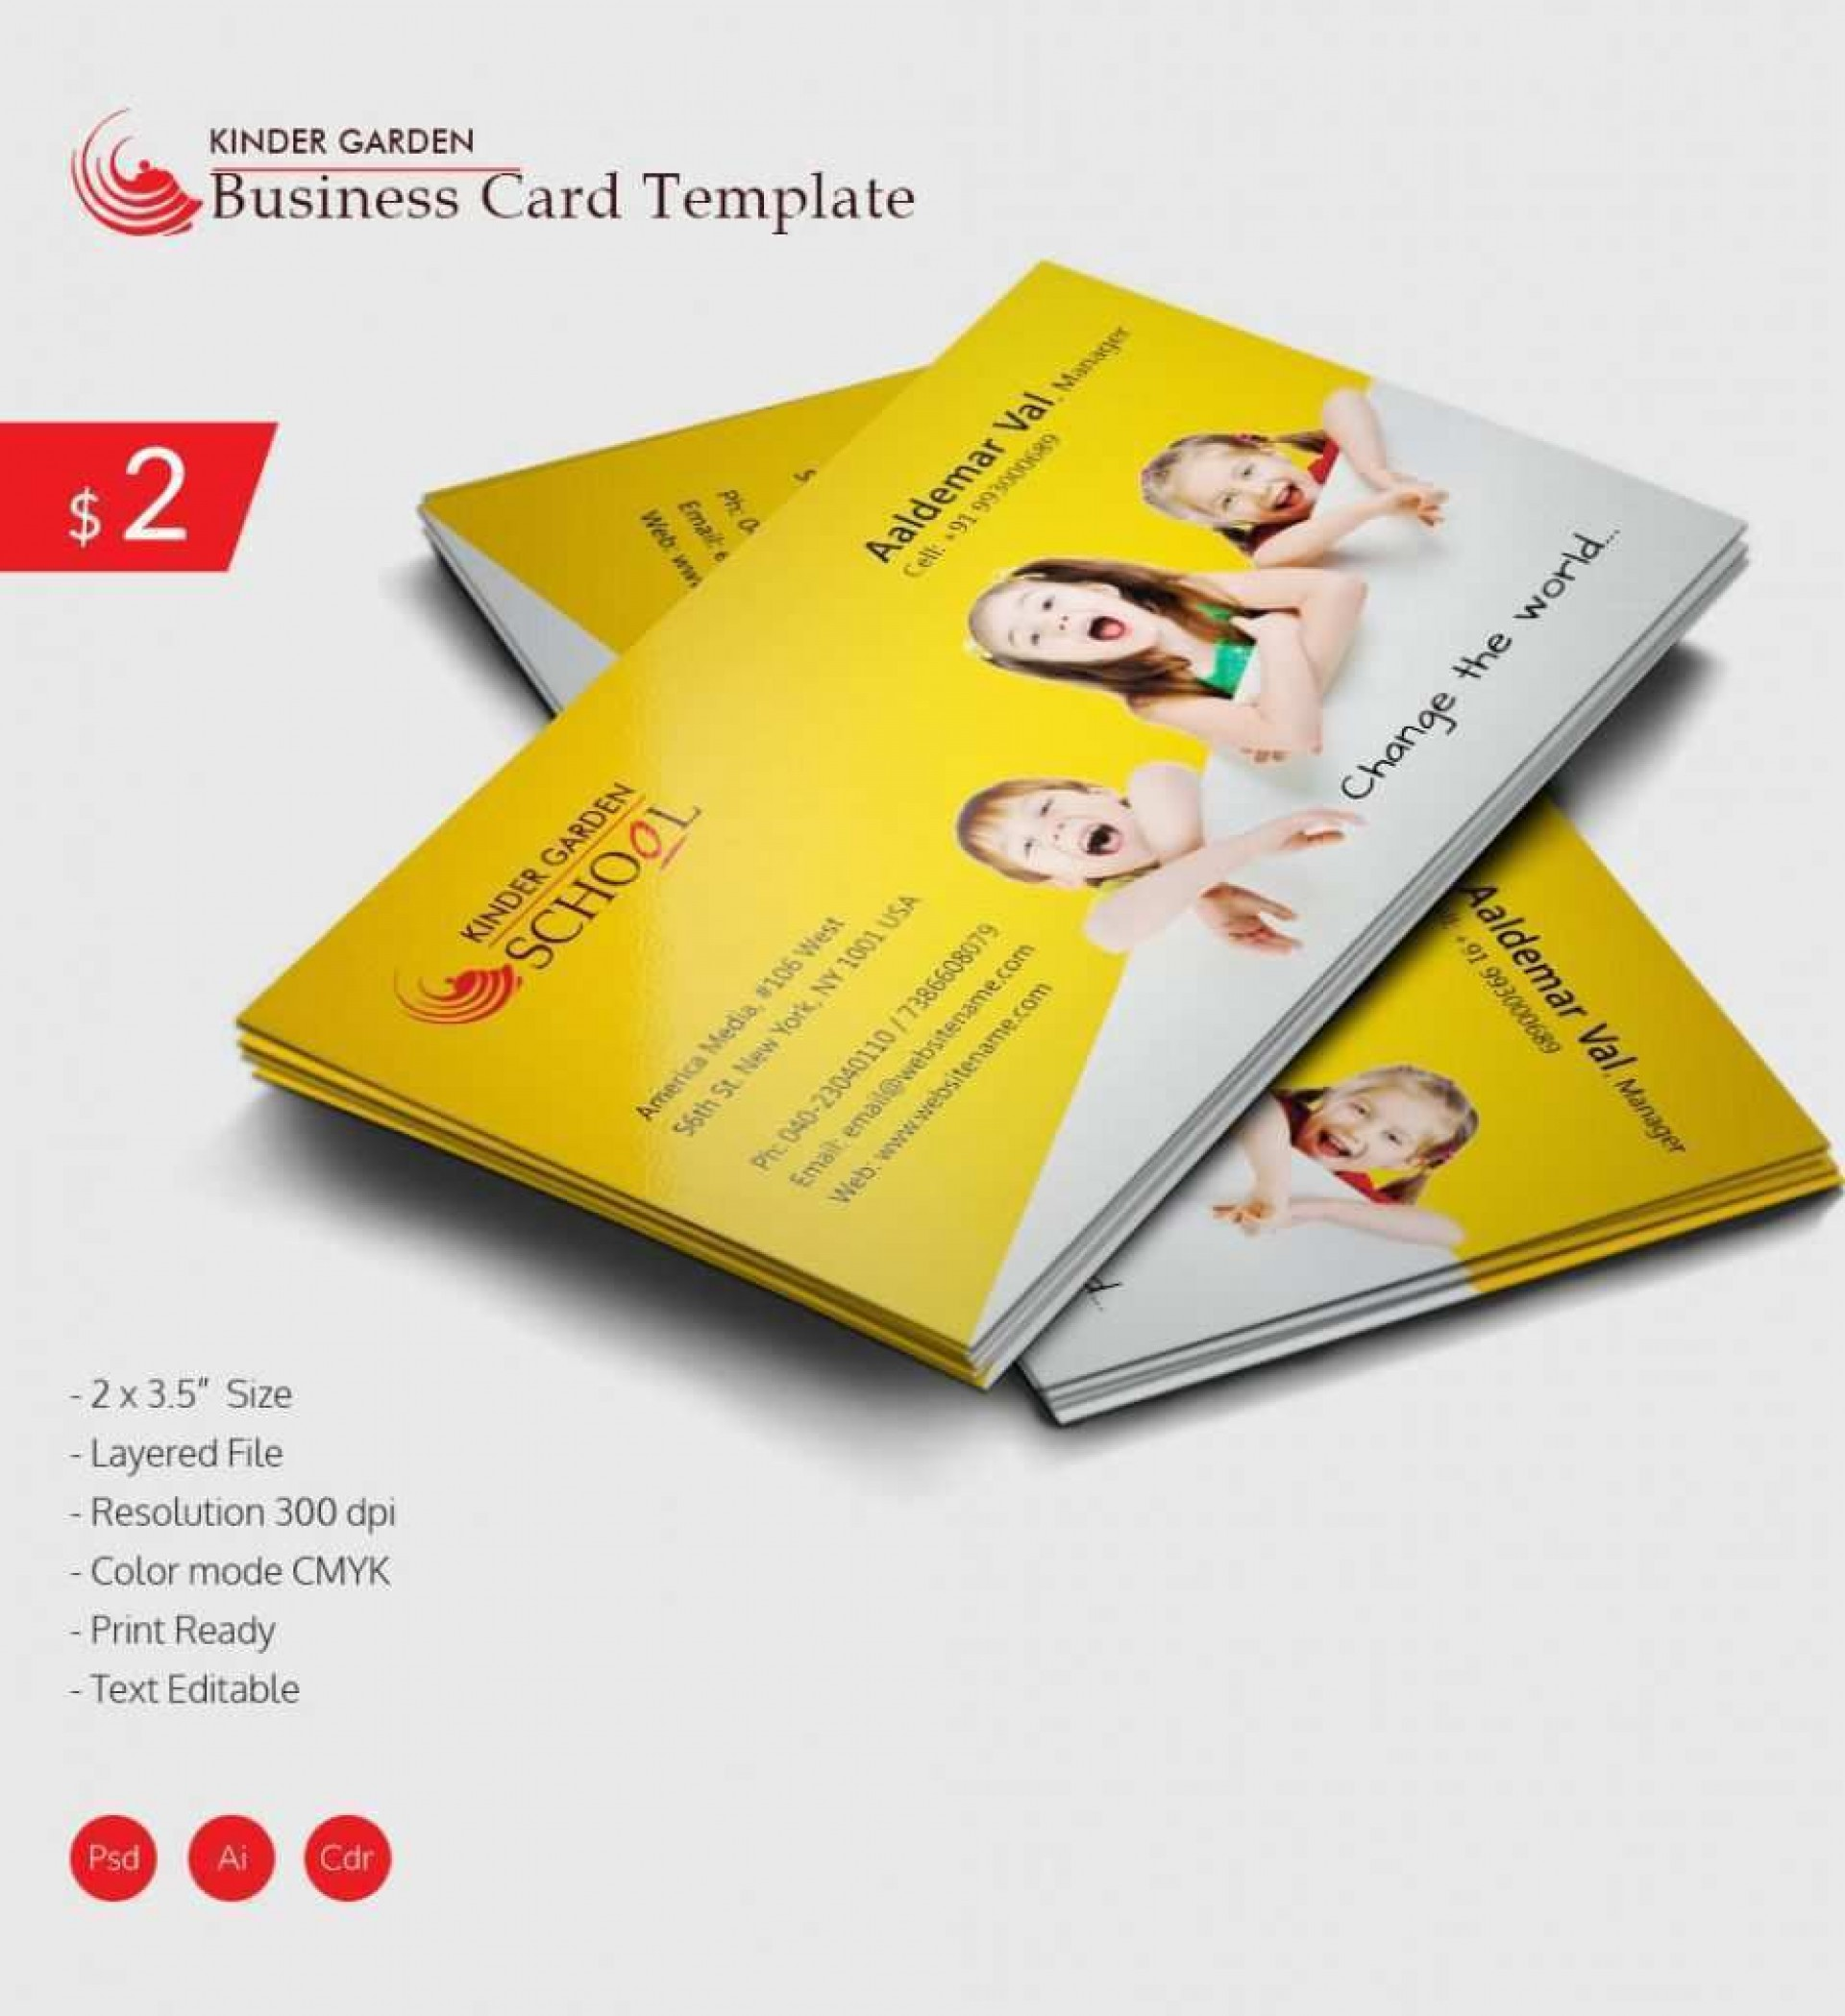 004 Remarkable Blank Busines Card Template Psd Free Download Sample  Photoshop1920